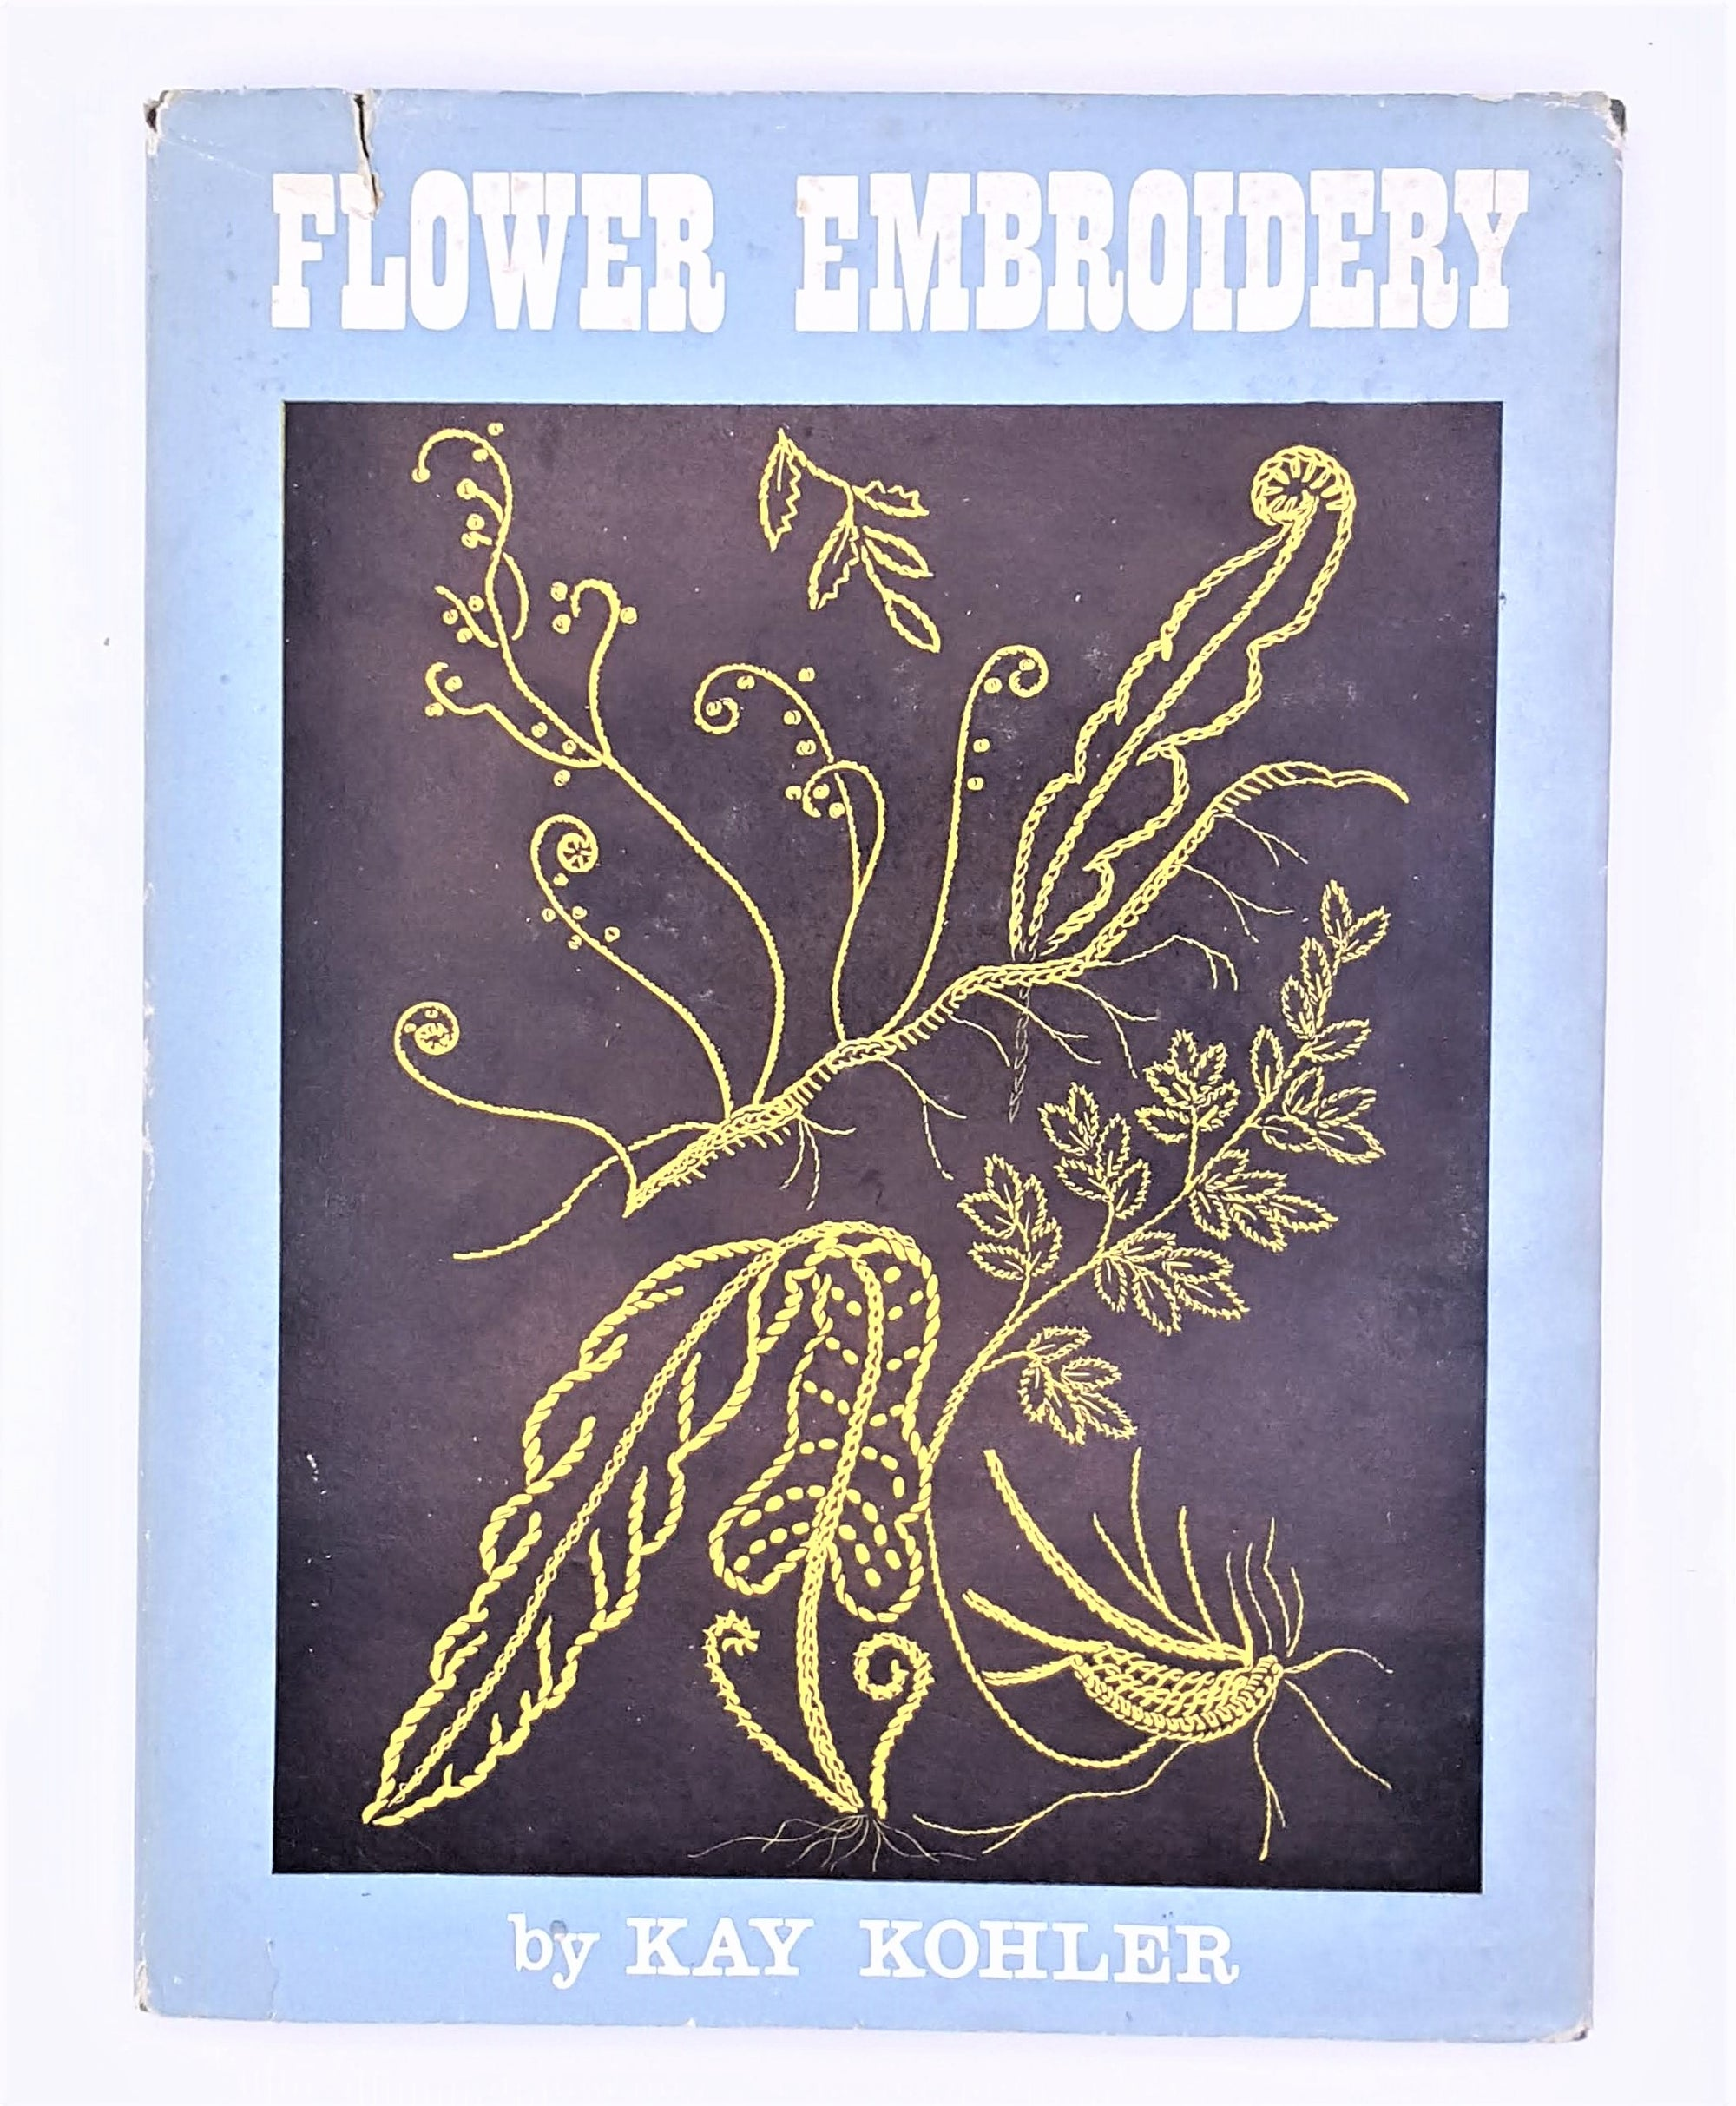 Flower Embroidery 1960